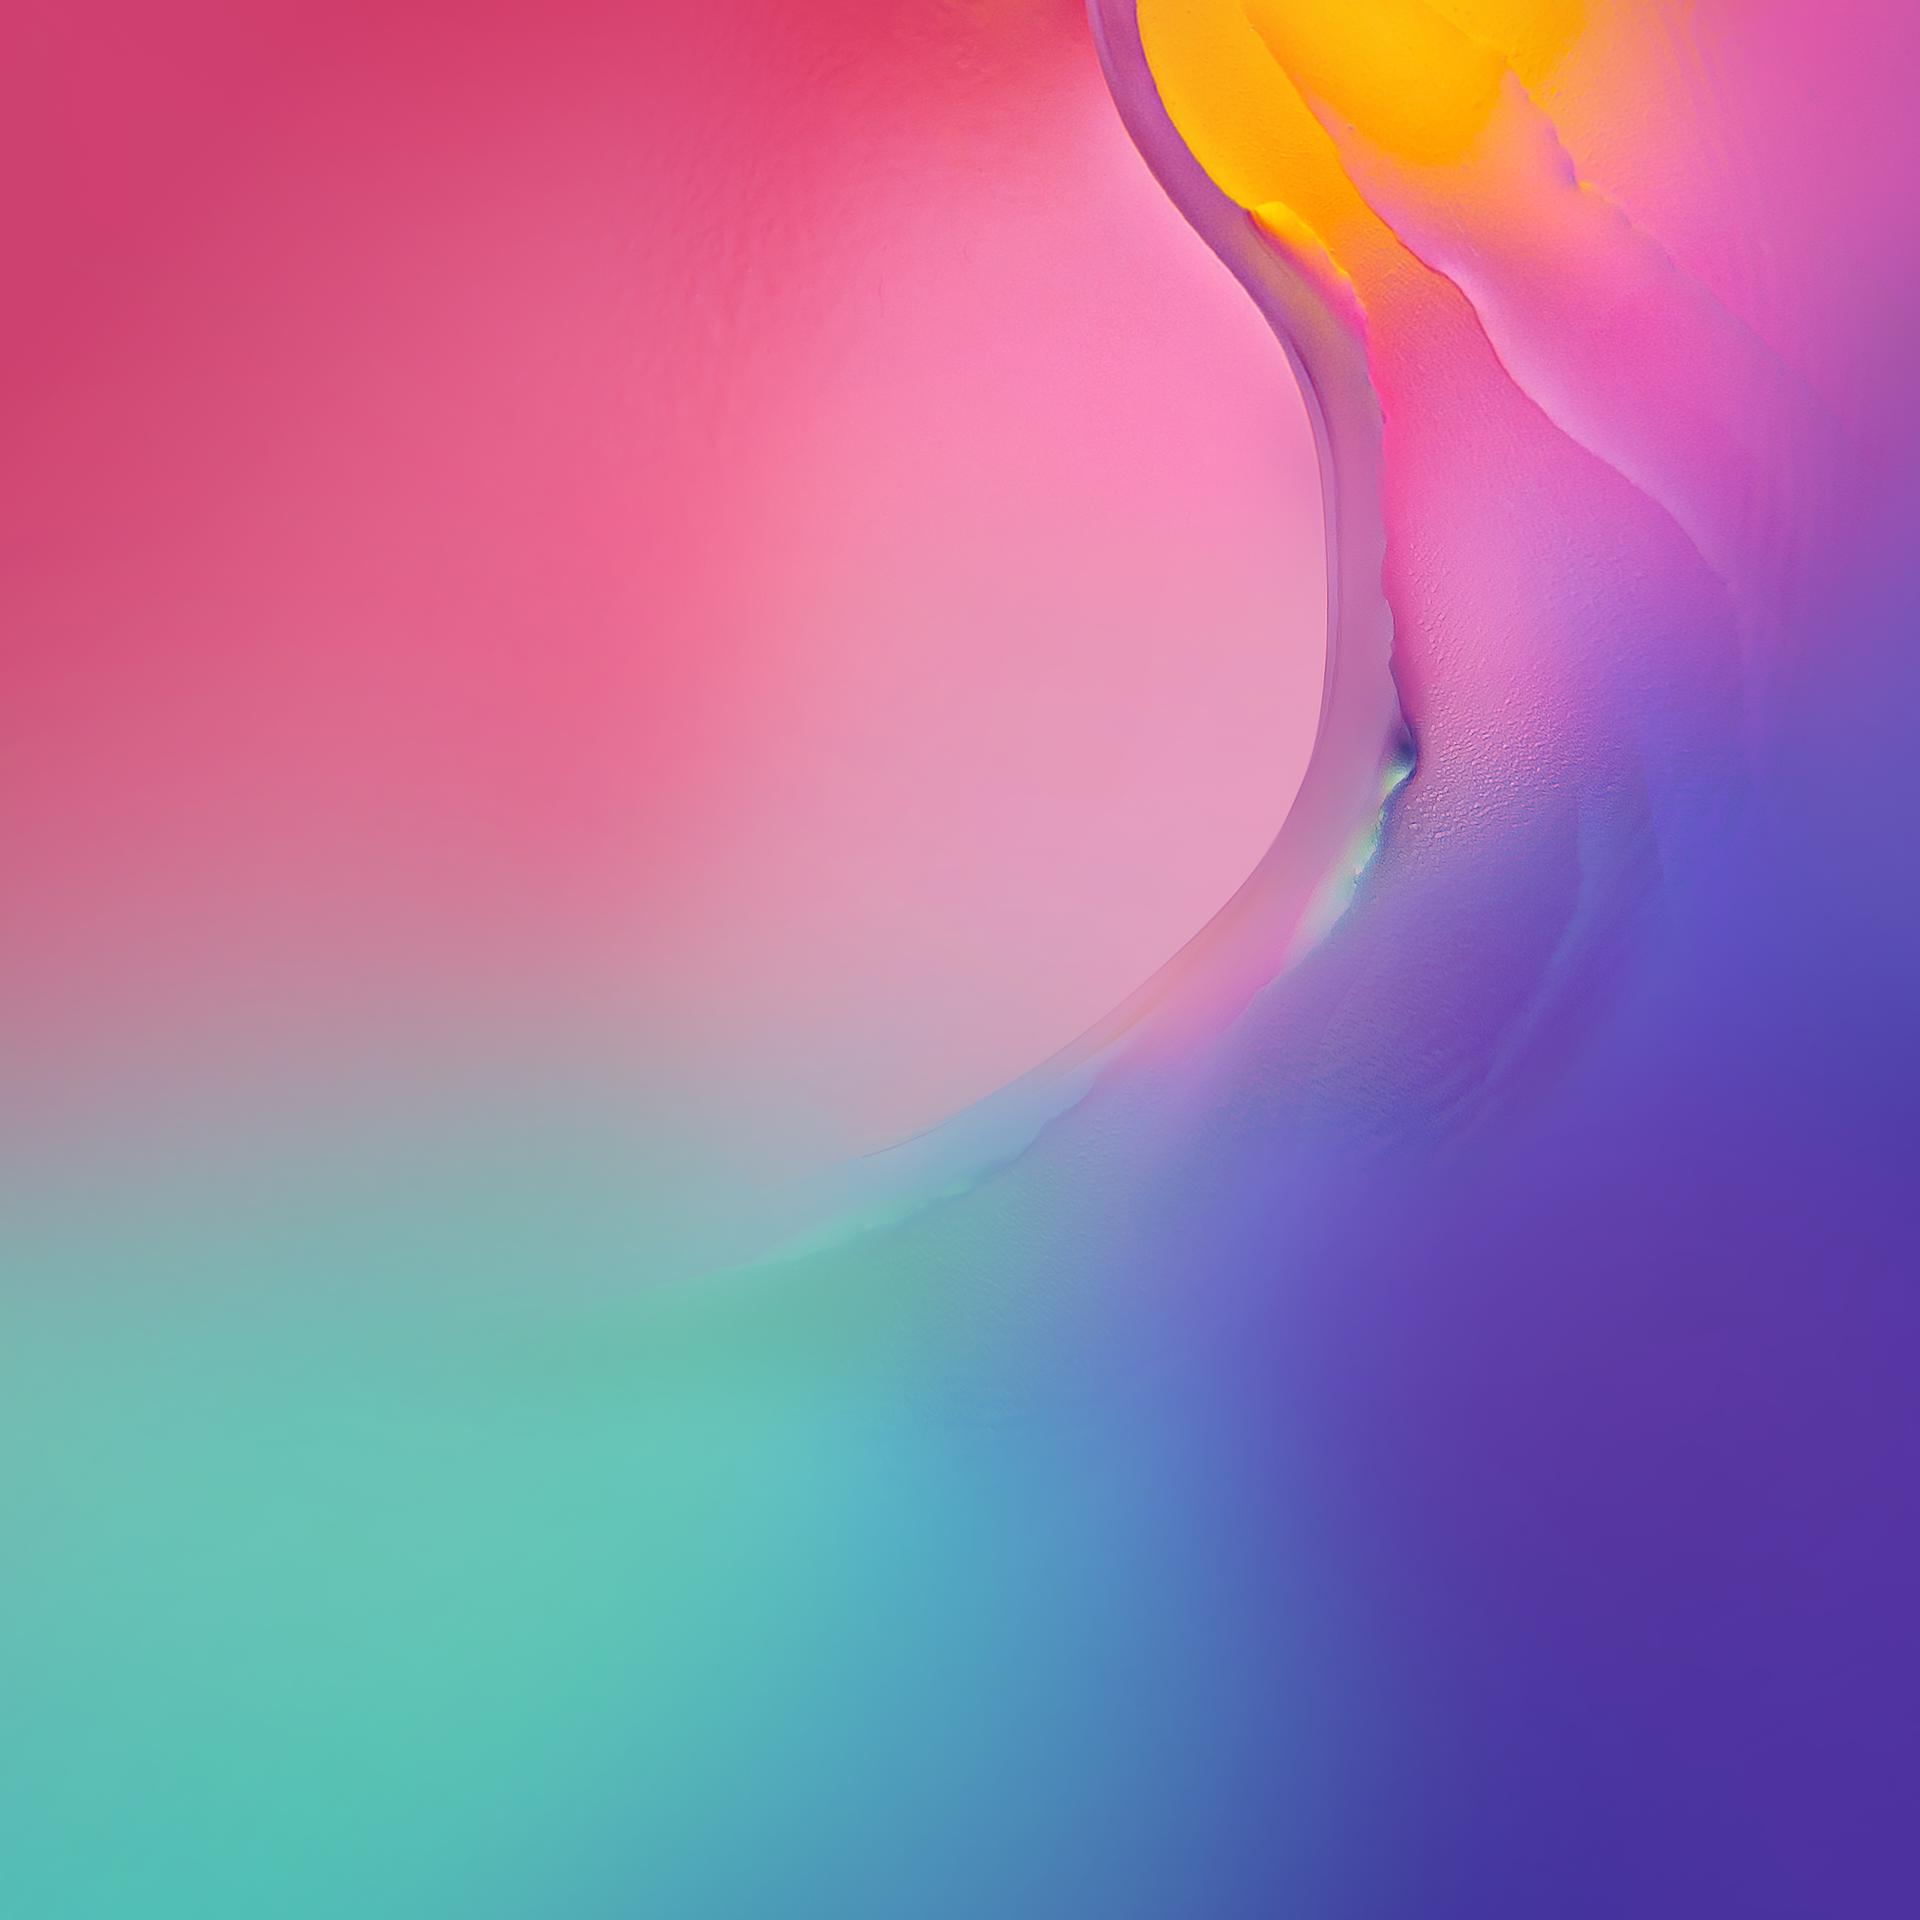 Download Samsung Galaxy Tab S5e Official Wallpaper Here Full Hd